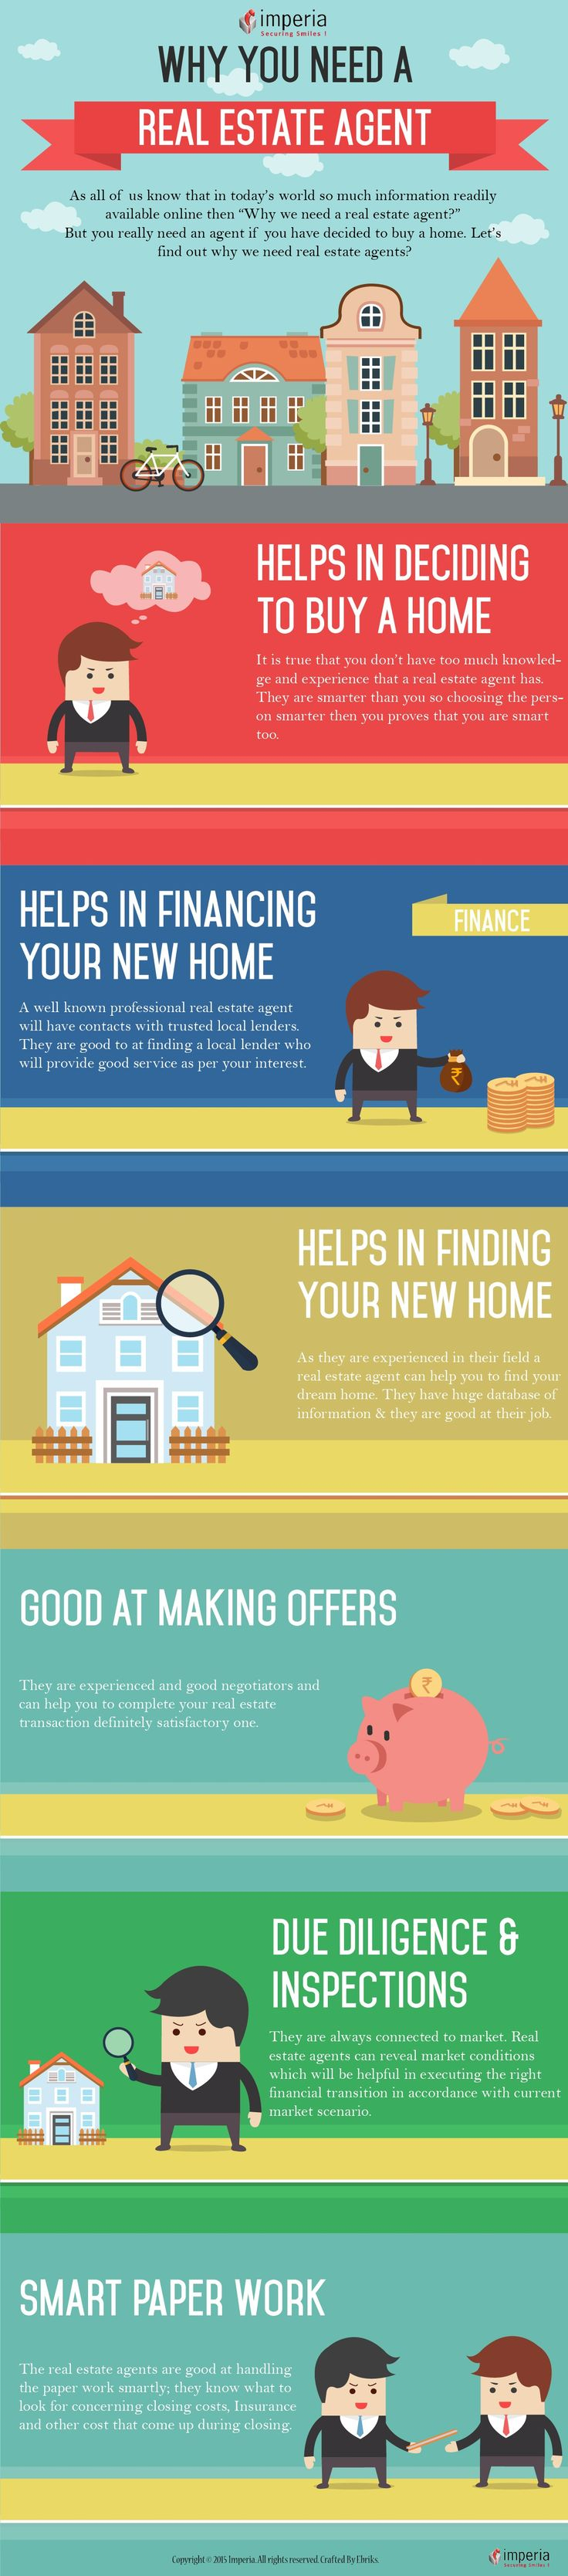 #Home buyers don't really aware of what real estate #agent brings to the table that they can't do for themselves. Here is the reason why we need #realestate agent?